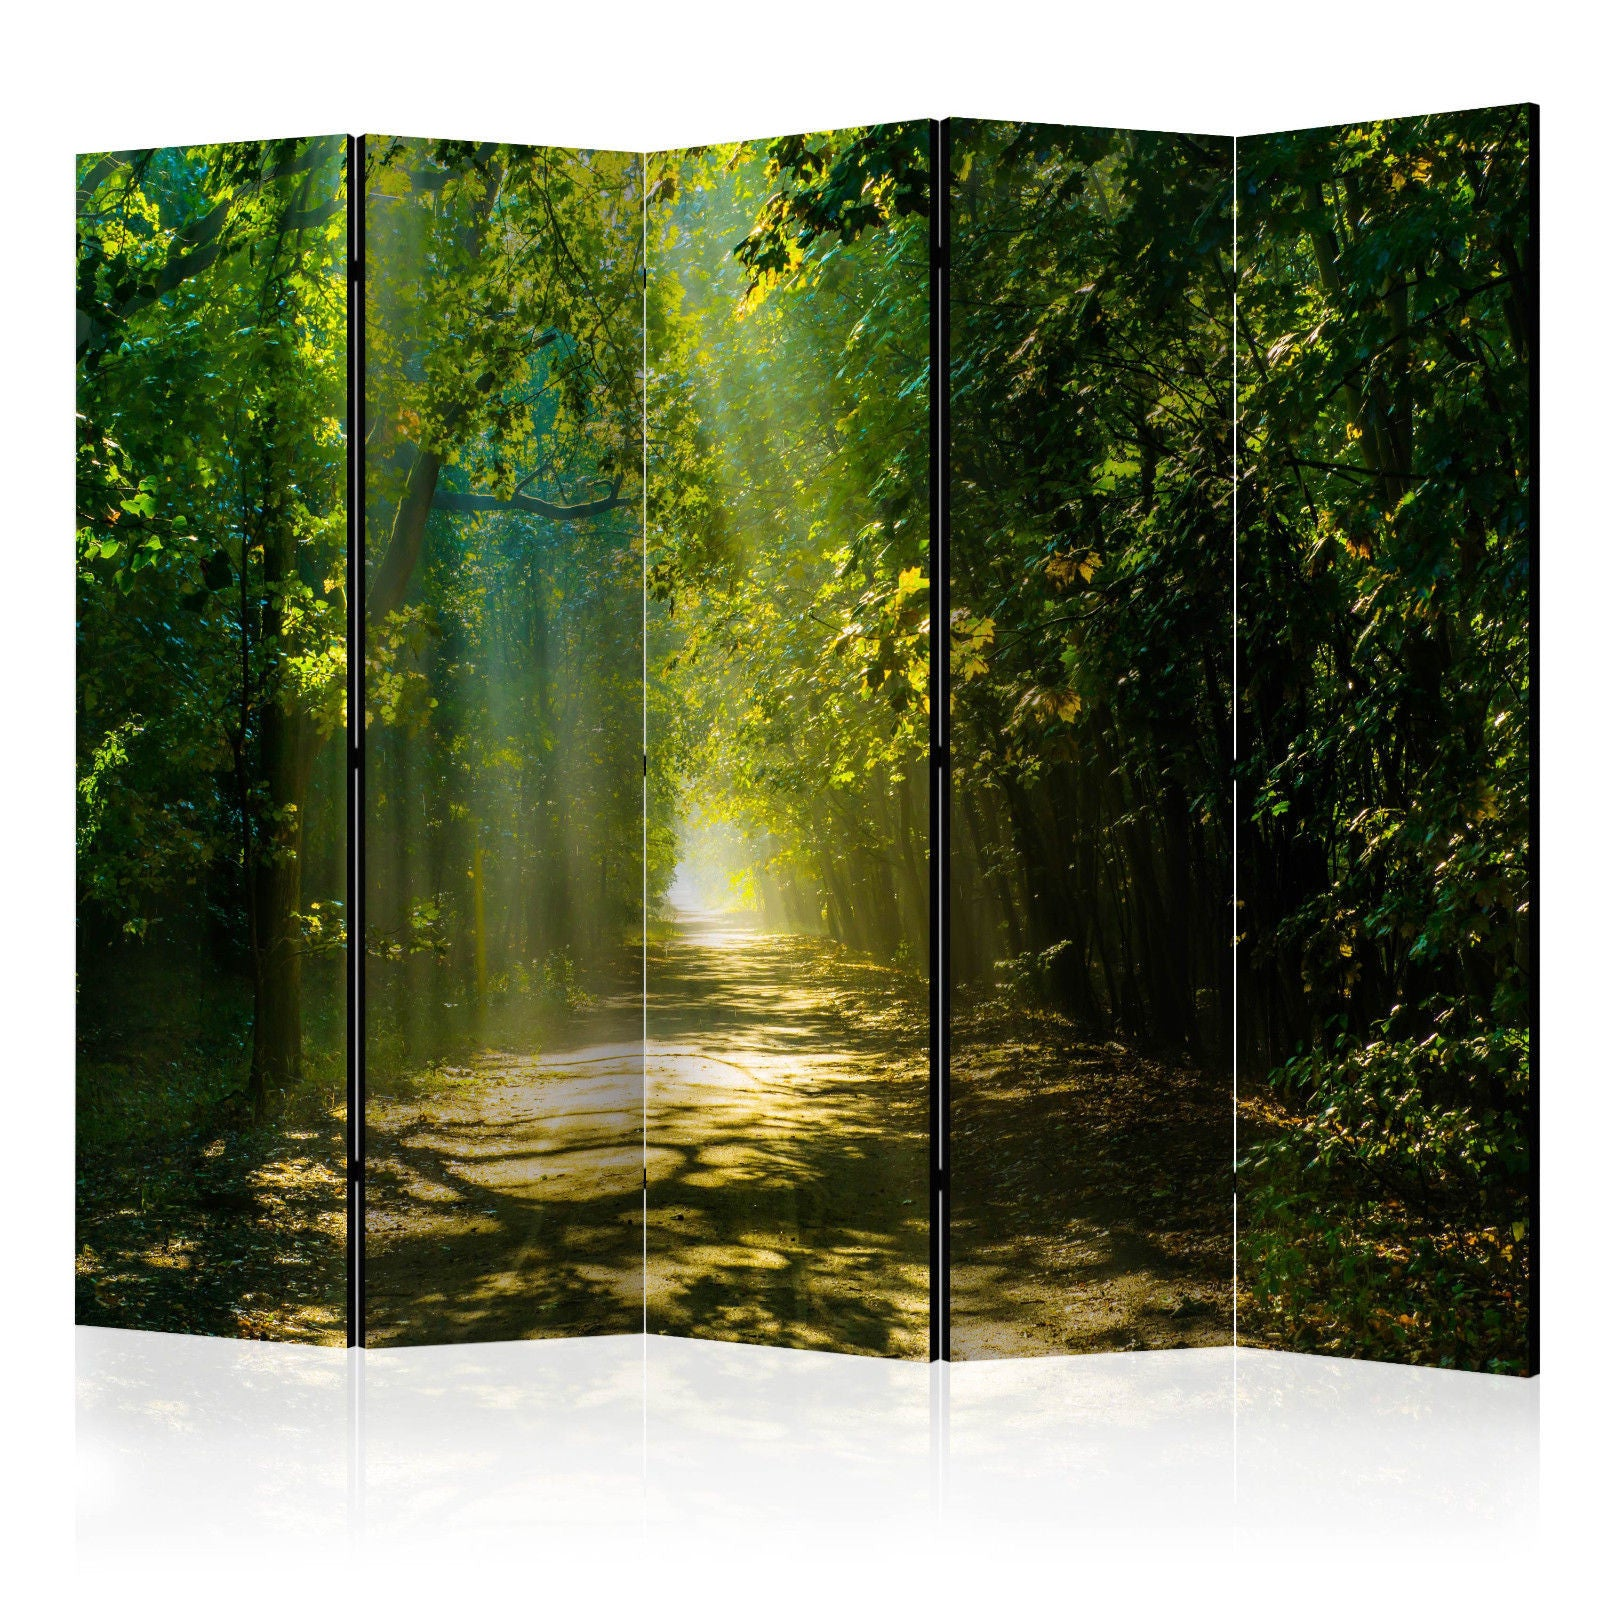 Double Sided Forest Room Divider Screen - 5 Panel